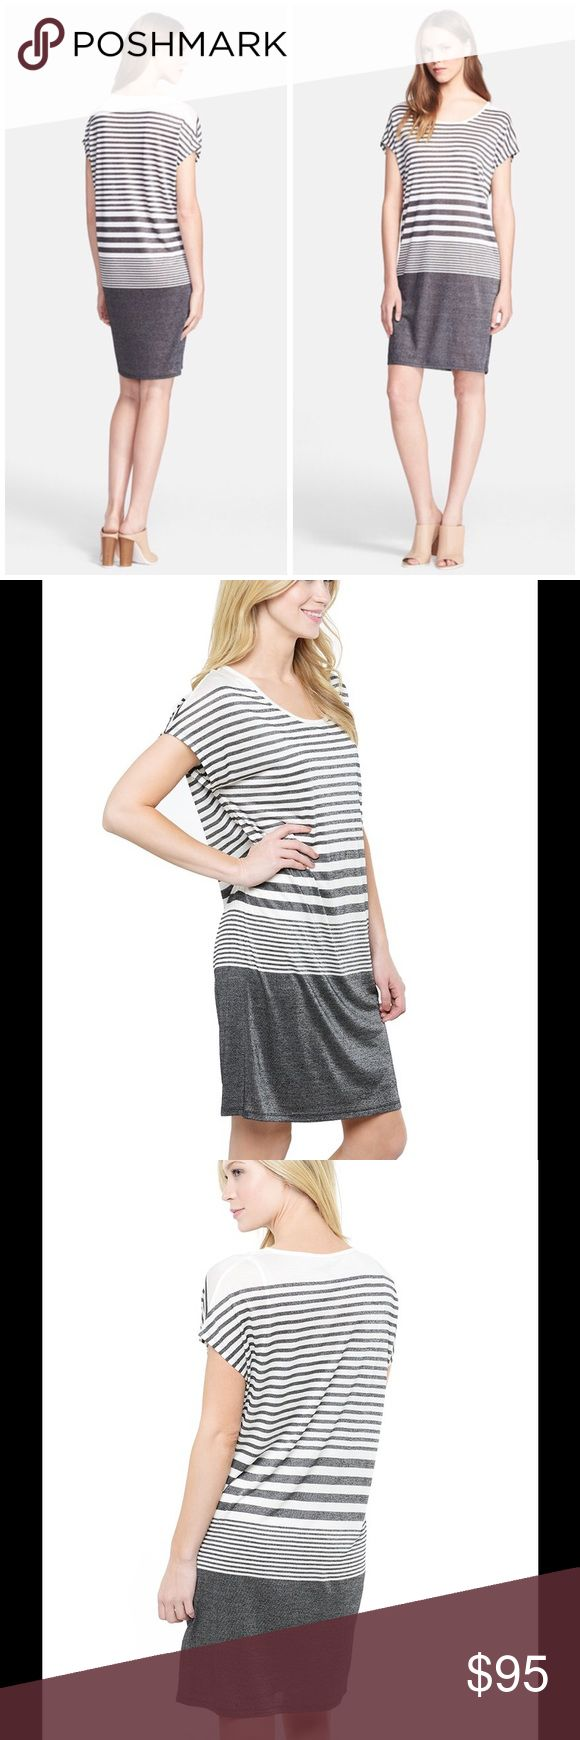 🆕 Vince variegated stripe tee shirt dress Heathered stripes visually structure a curve-skimming T-shirt dress, dividing the short-sleeve bodice from the solid-color straight skirt. - Scoop neck - Short sleeves - Variegated stripe - Imported Fiber Content Self: 80% rayon, 20% polyester Lining: 100% viscose Brand new with tag. Retail price $225. Vince Dresses